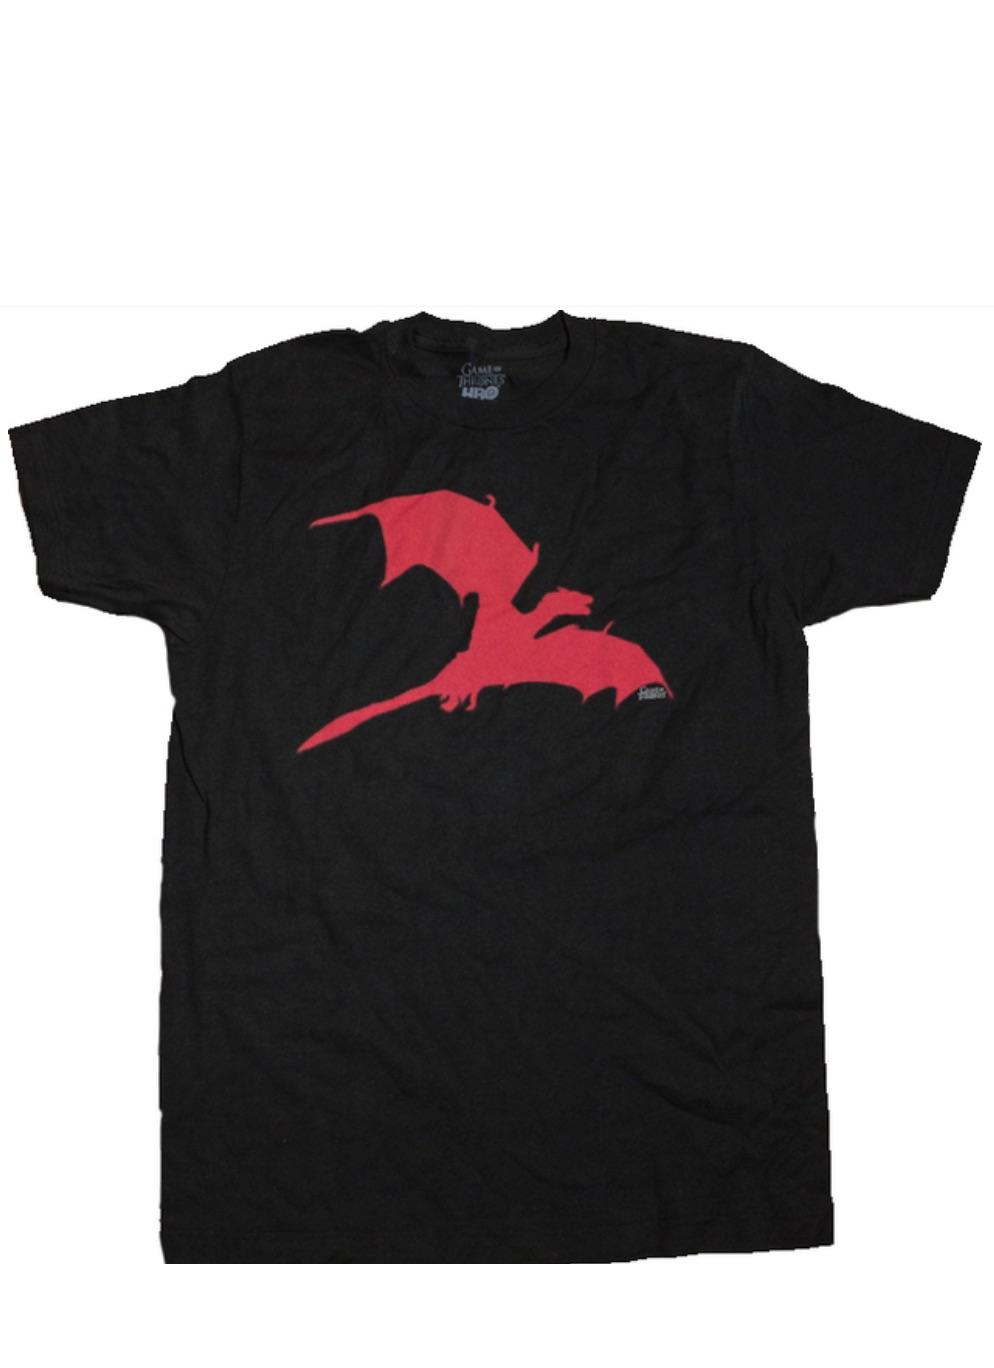 GAME OF THRONES LARGE DRAGON T-SHIRT